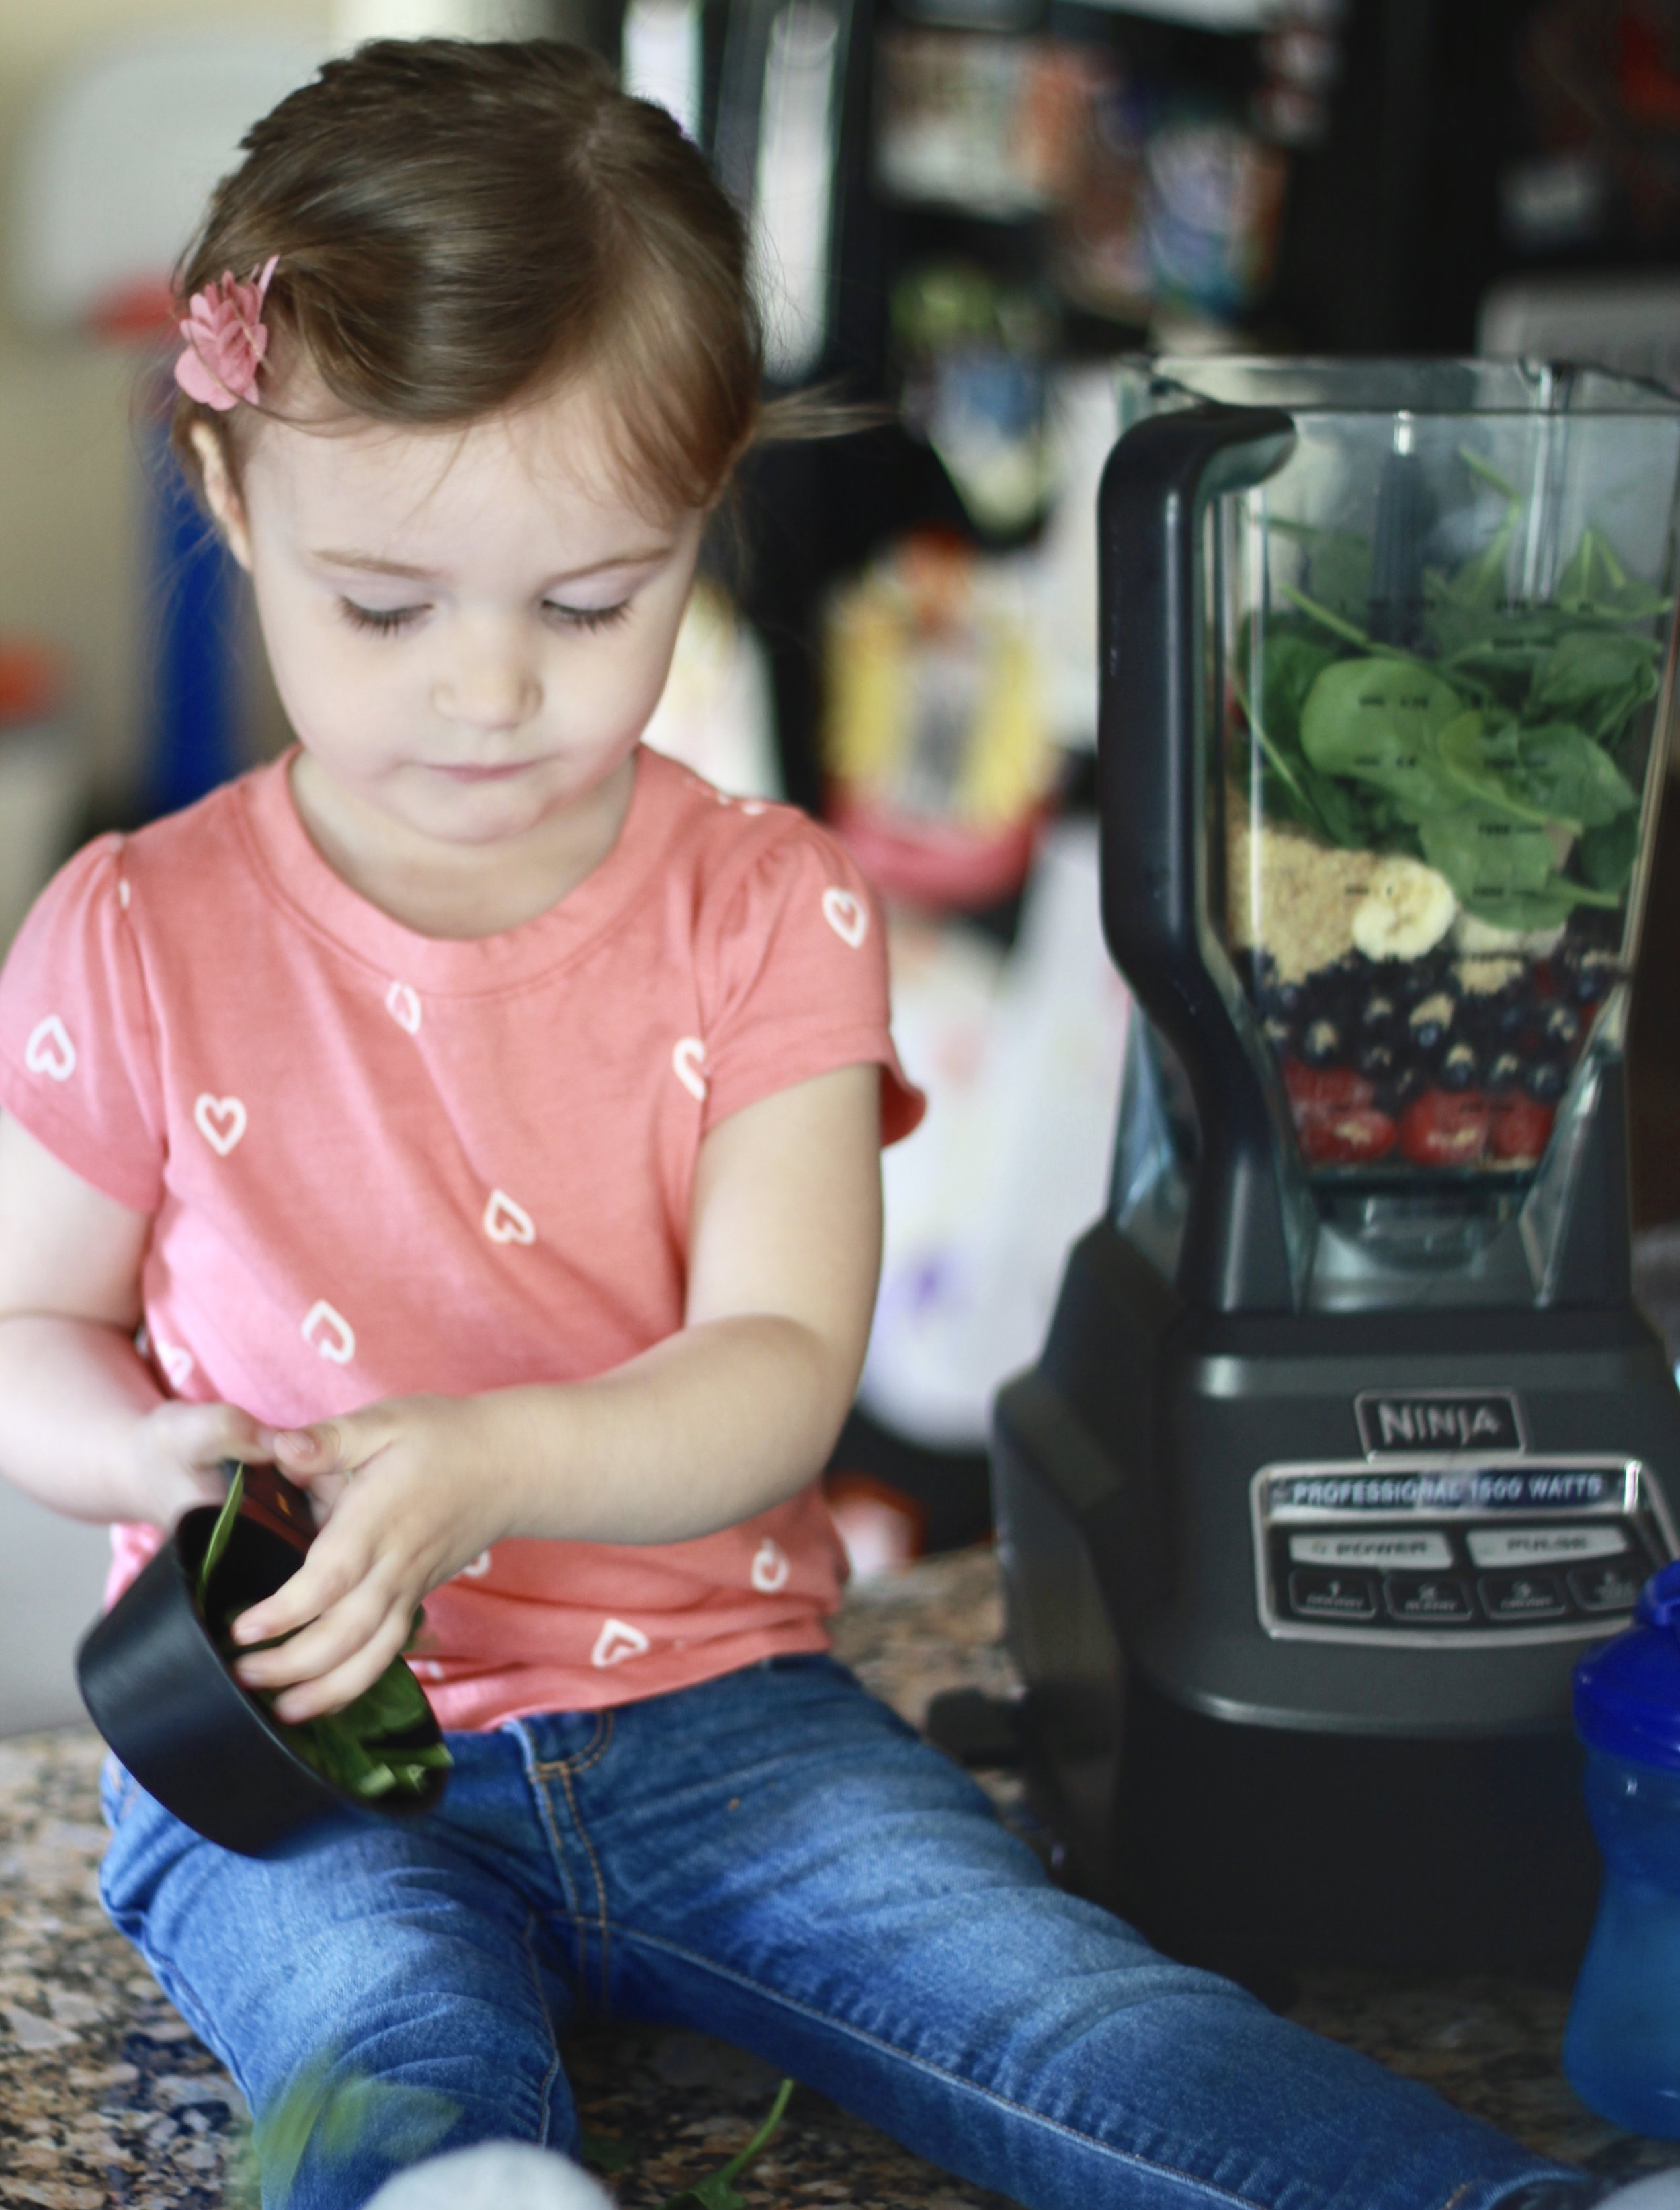 Let little ones help make smoothies!